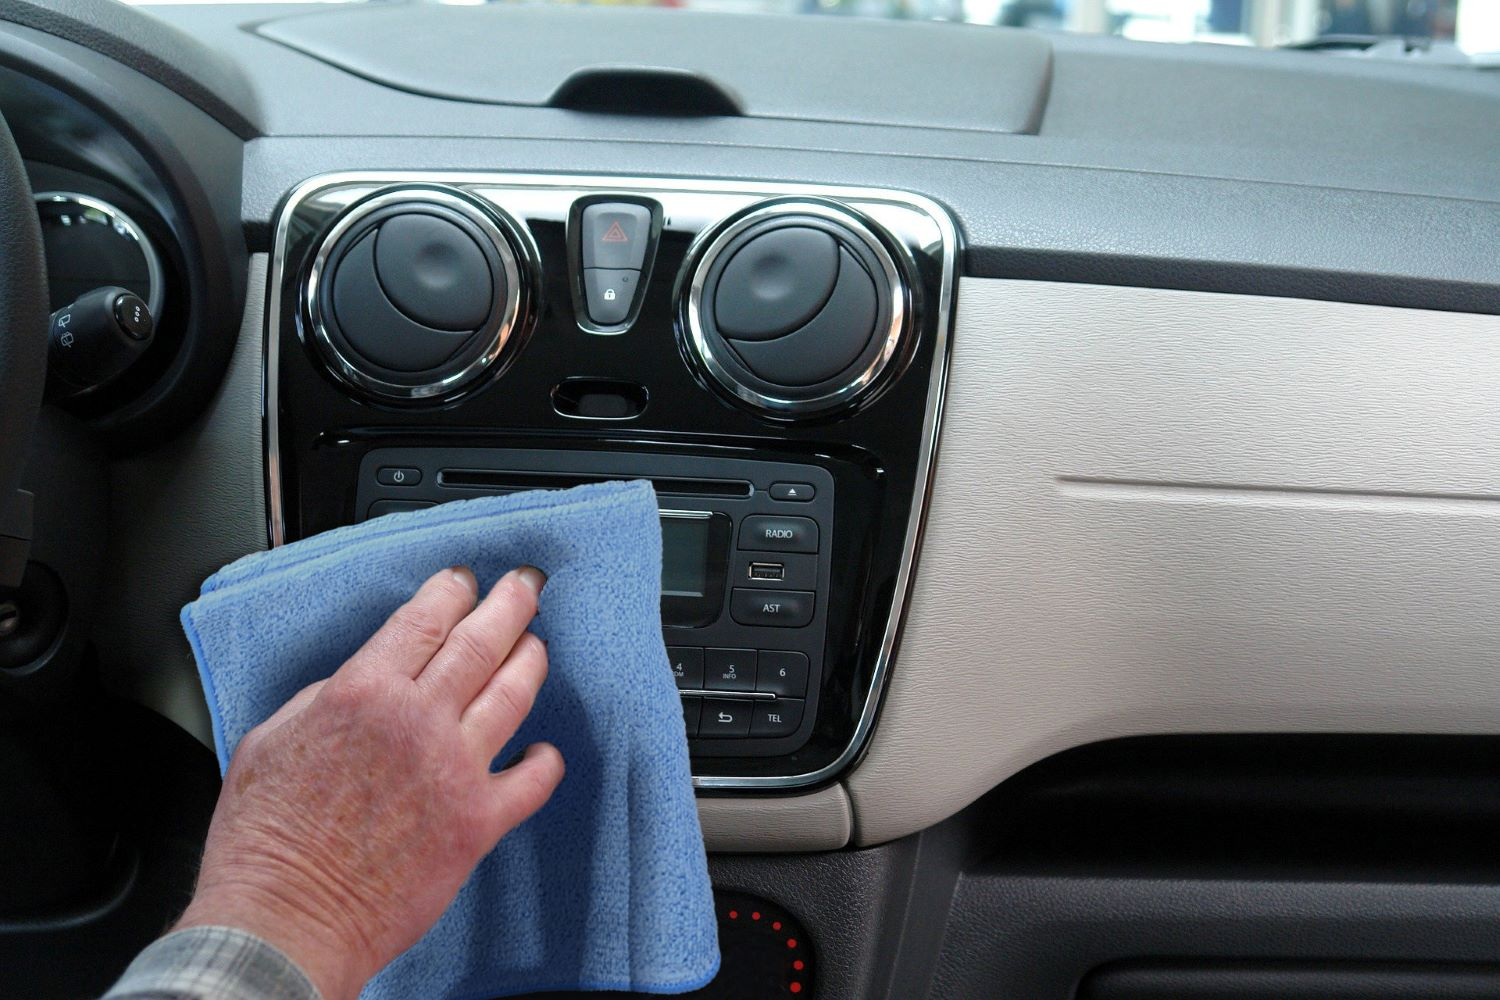 Microfiber Car Wash Towels Interior Dashboard